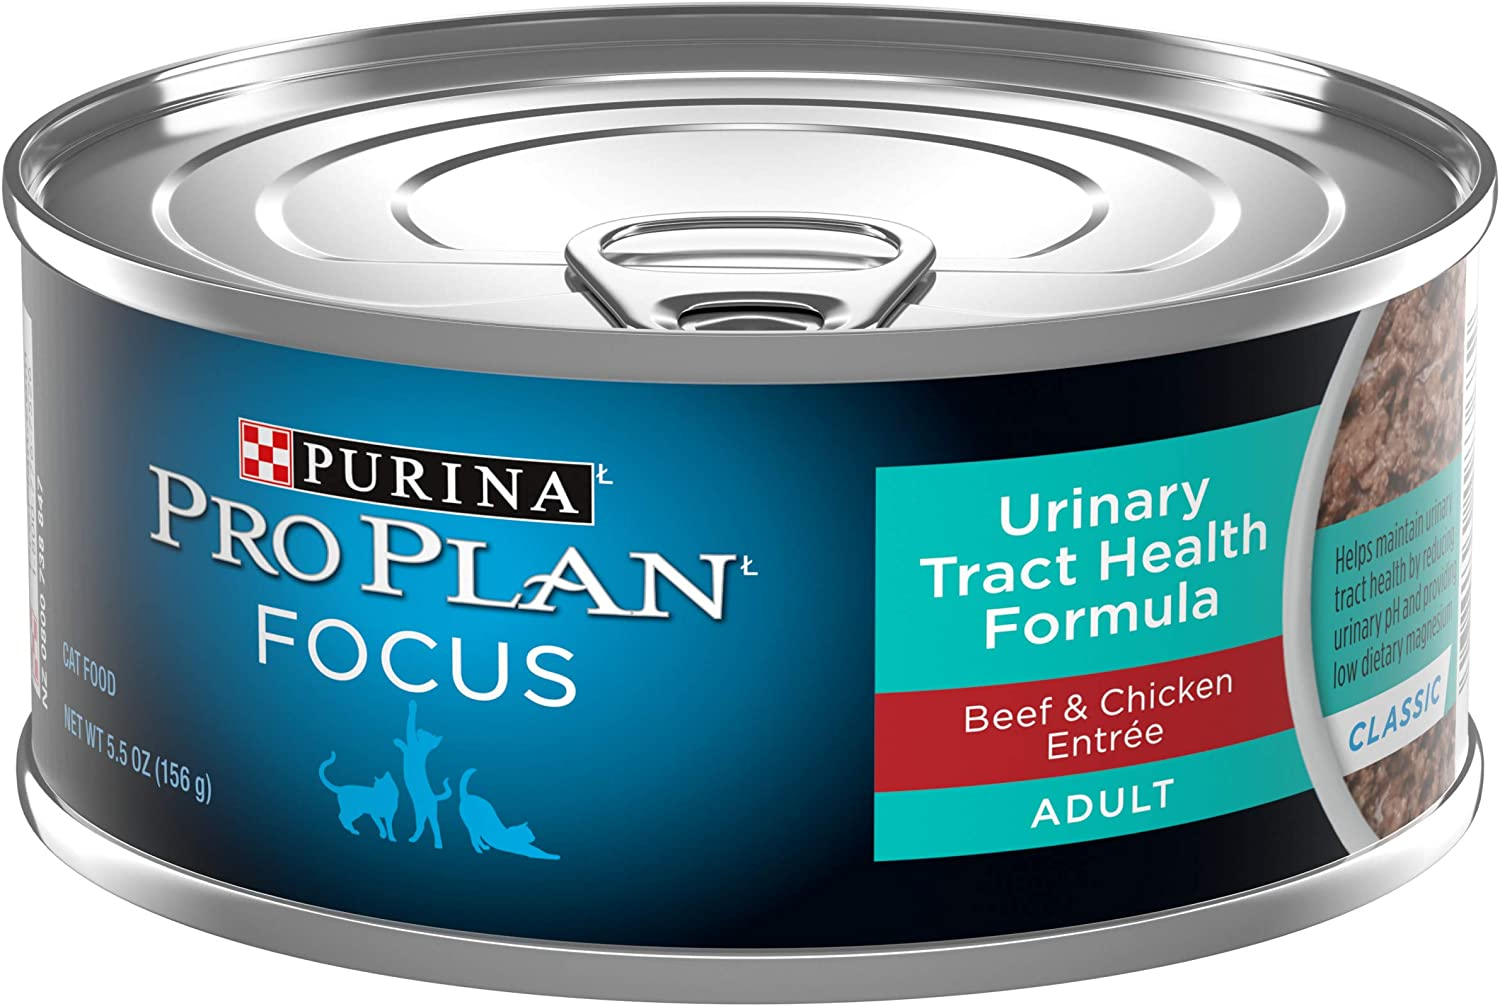 Purina Pro Plan Focus Urinary Tract Health Formula Beef & Chicken Entree in Gravy Adult Wet Cat Food - (24) 5.5 oz. Cans